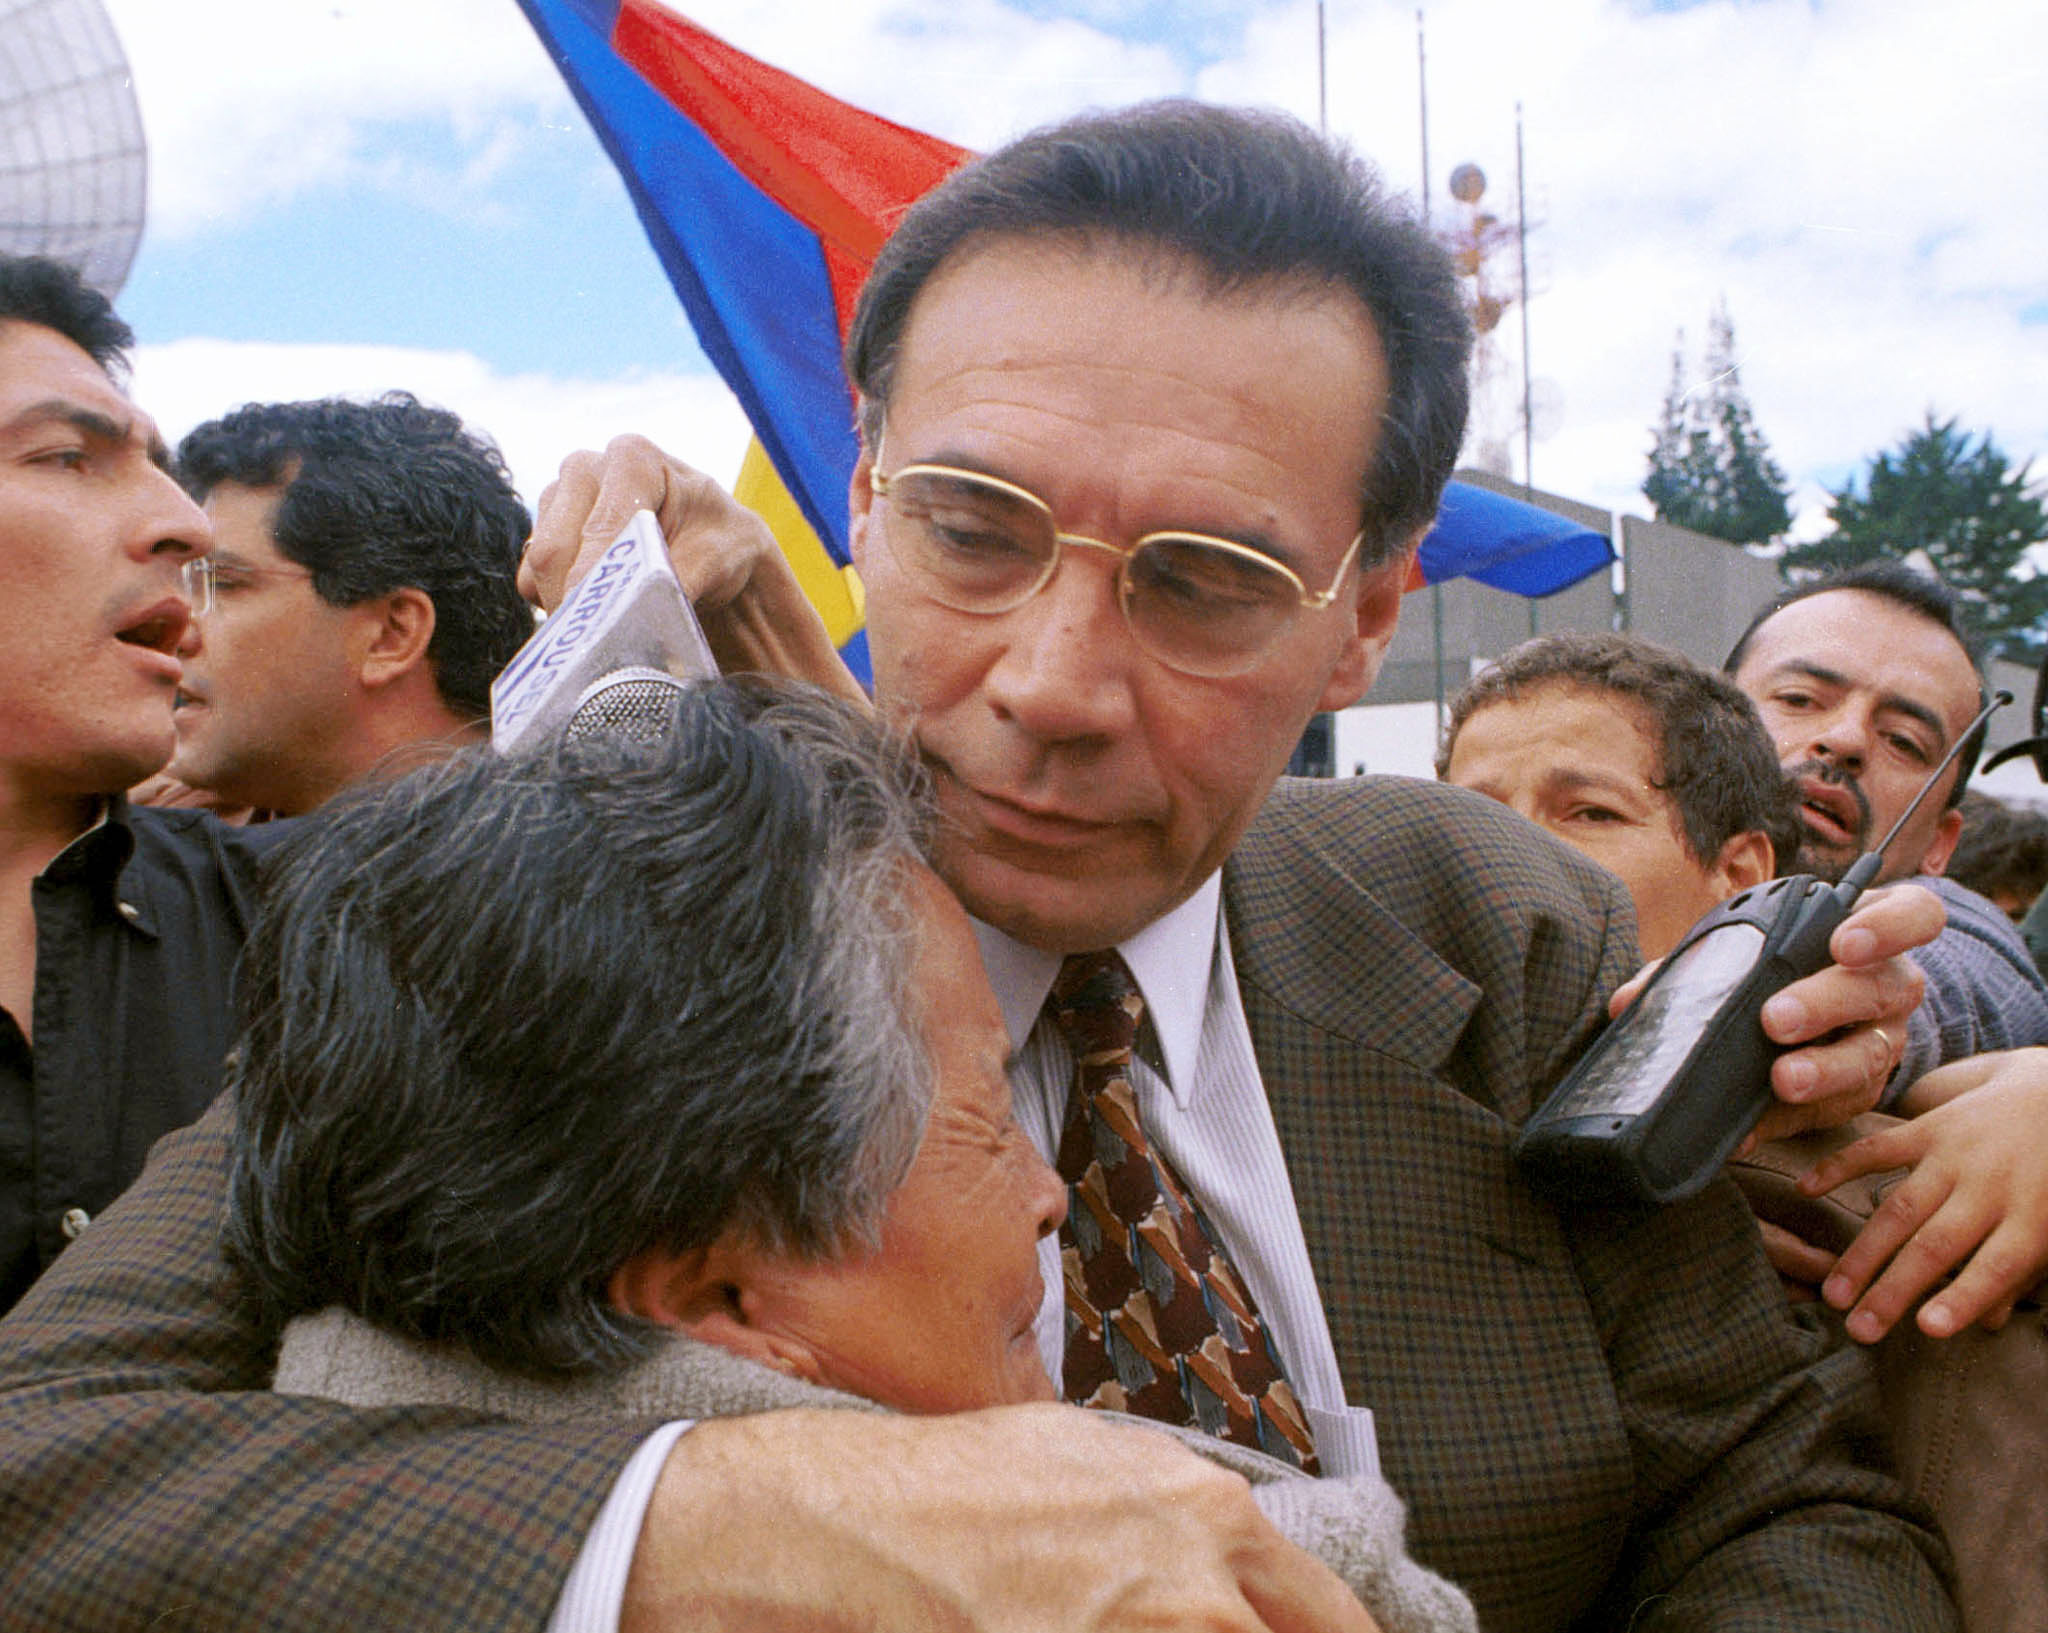 Deposed Ecuadorean President Jamil Mahuad is consoled by supporters.©REUTERS